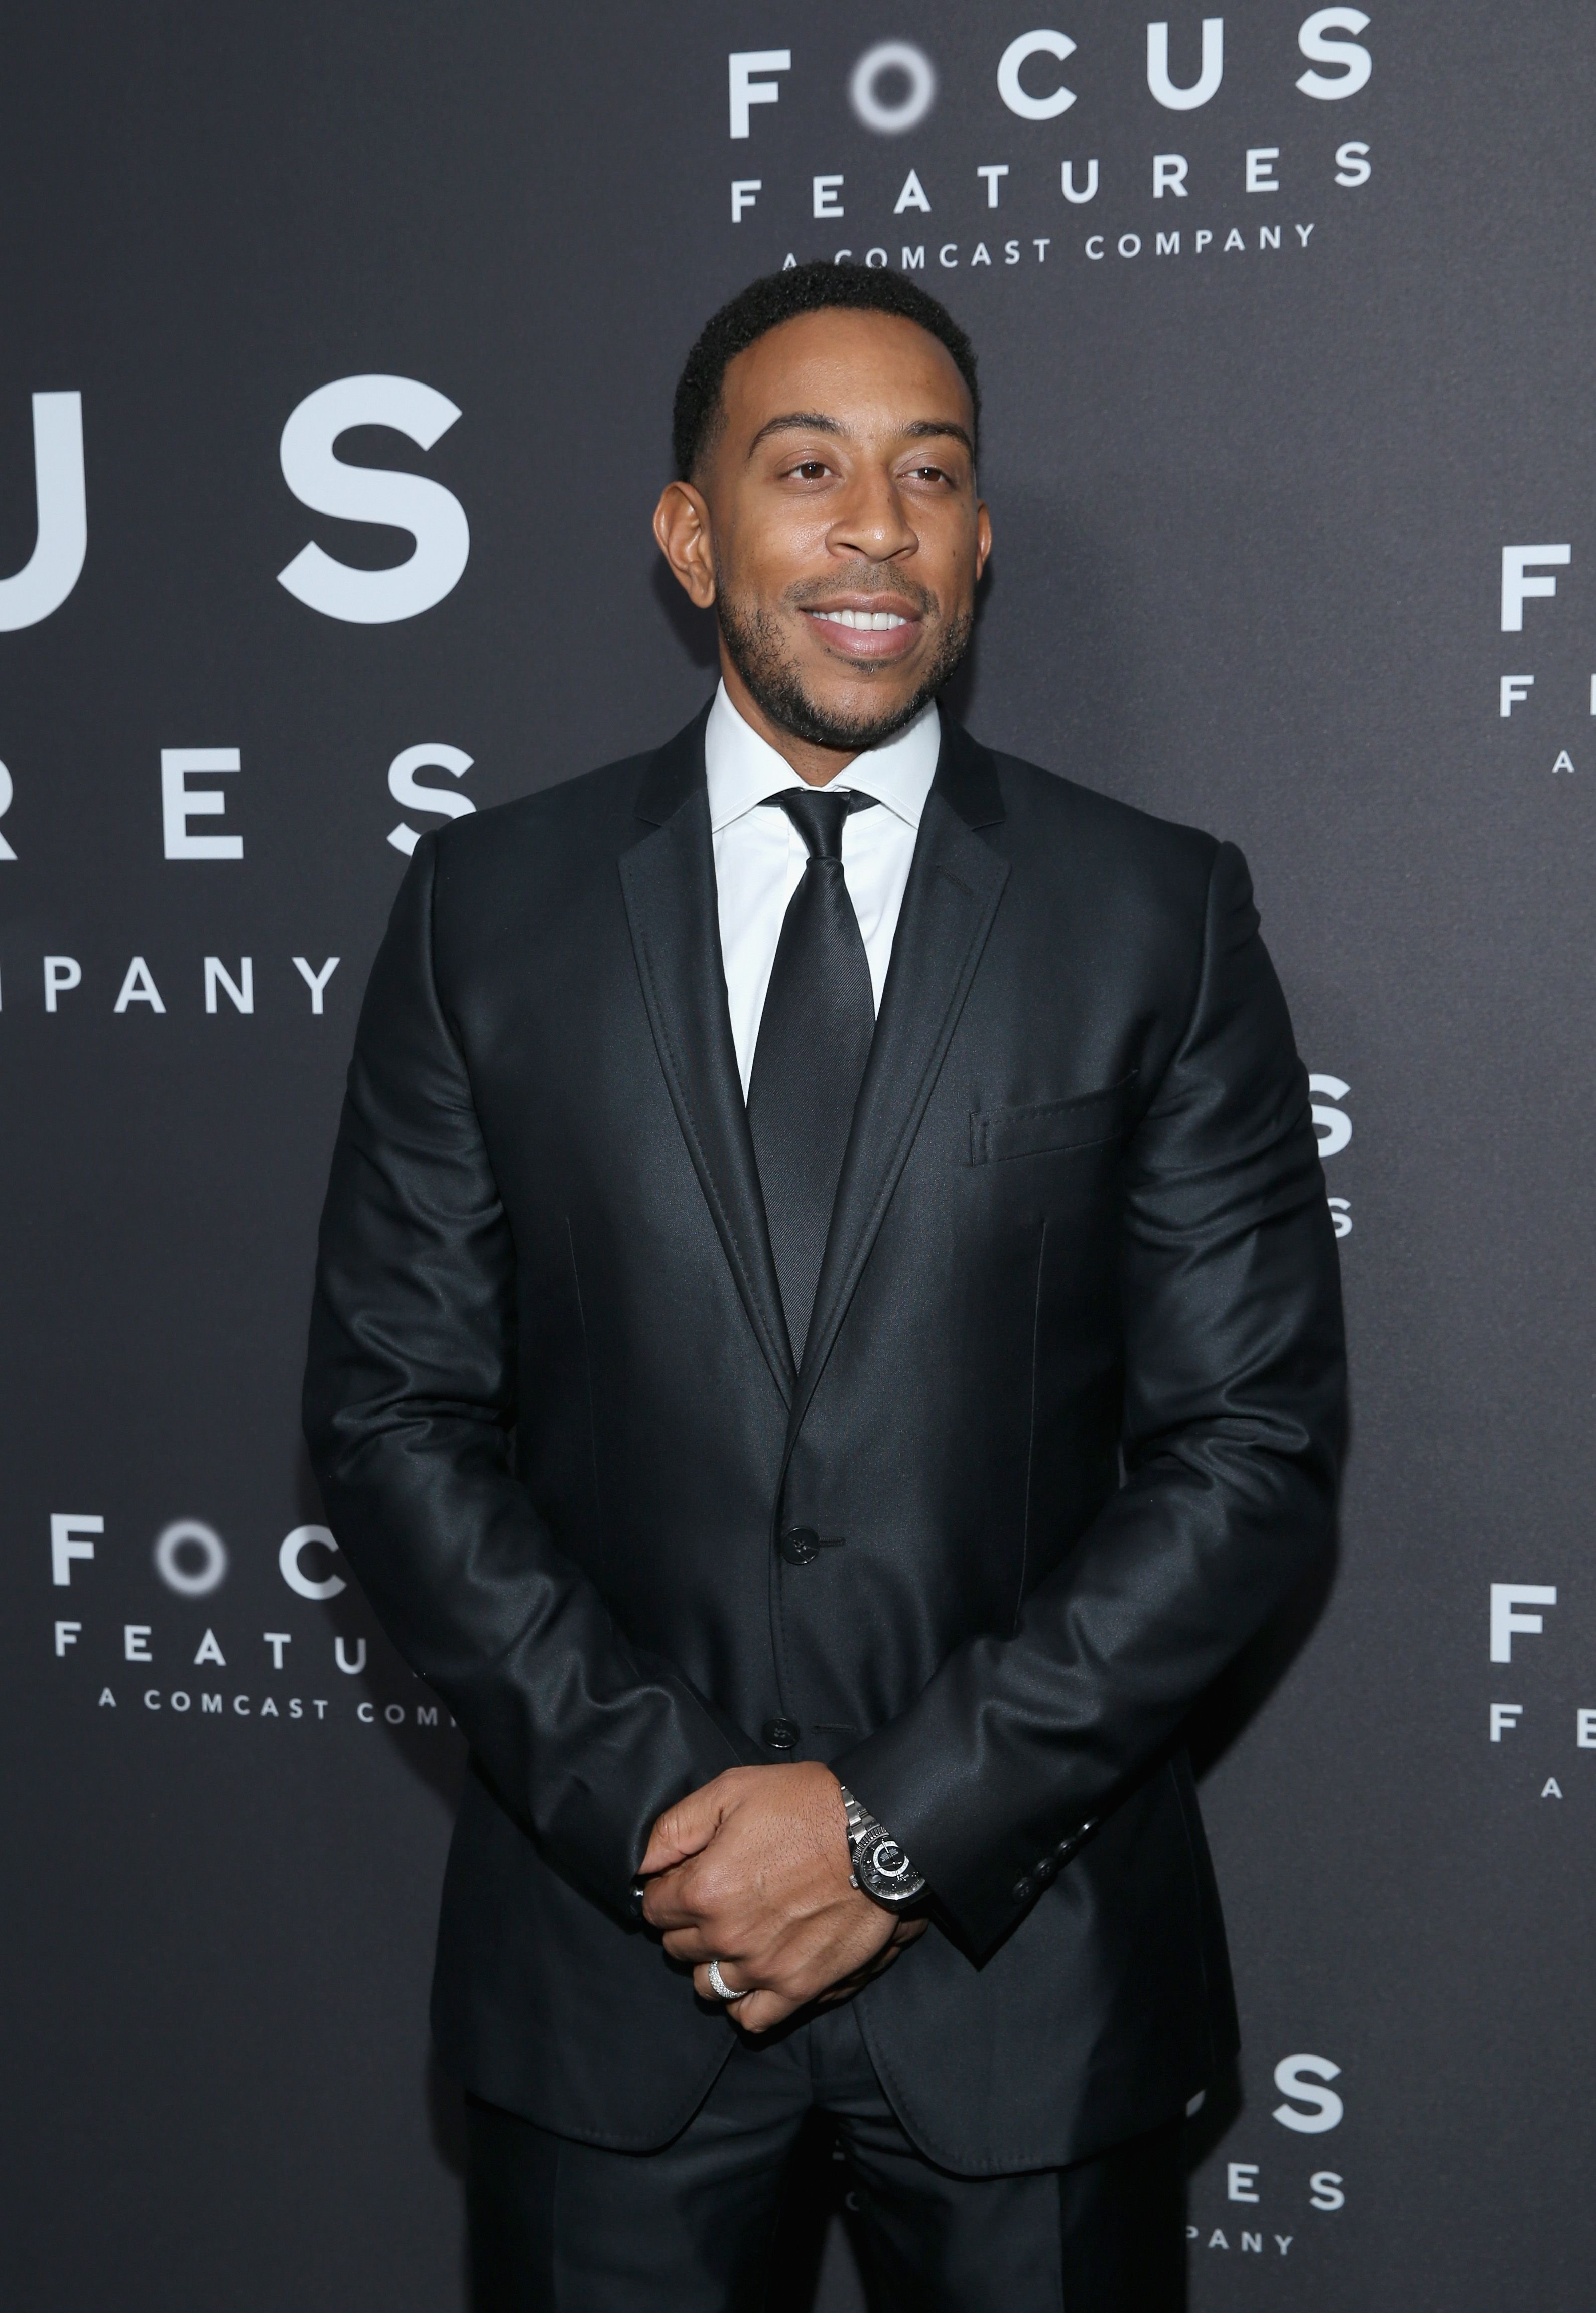 Ludacris at Focus Features' Golden Globe Awards after-party on January 7, 2018 | Photo: Getty Images